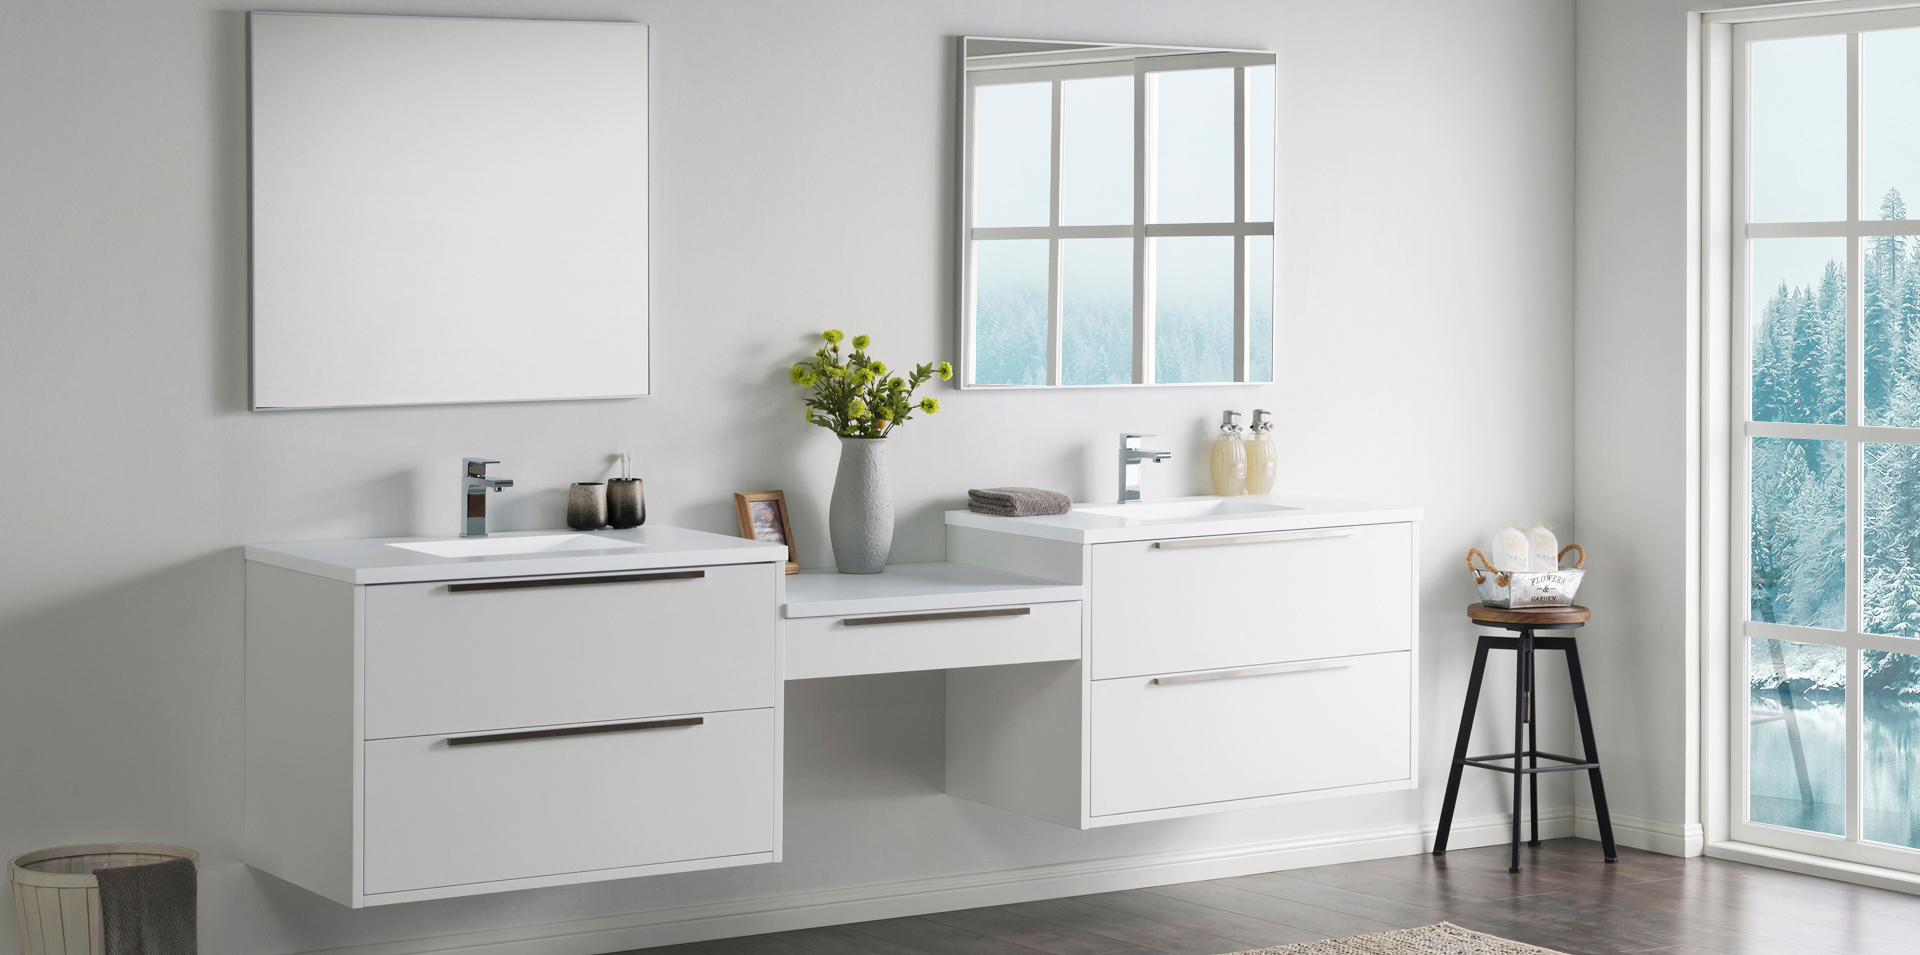 Modern Bathroom Vanities, Cabinets & Faucets